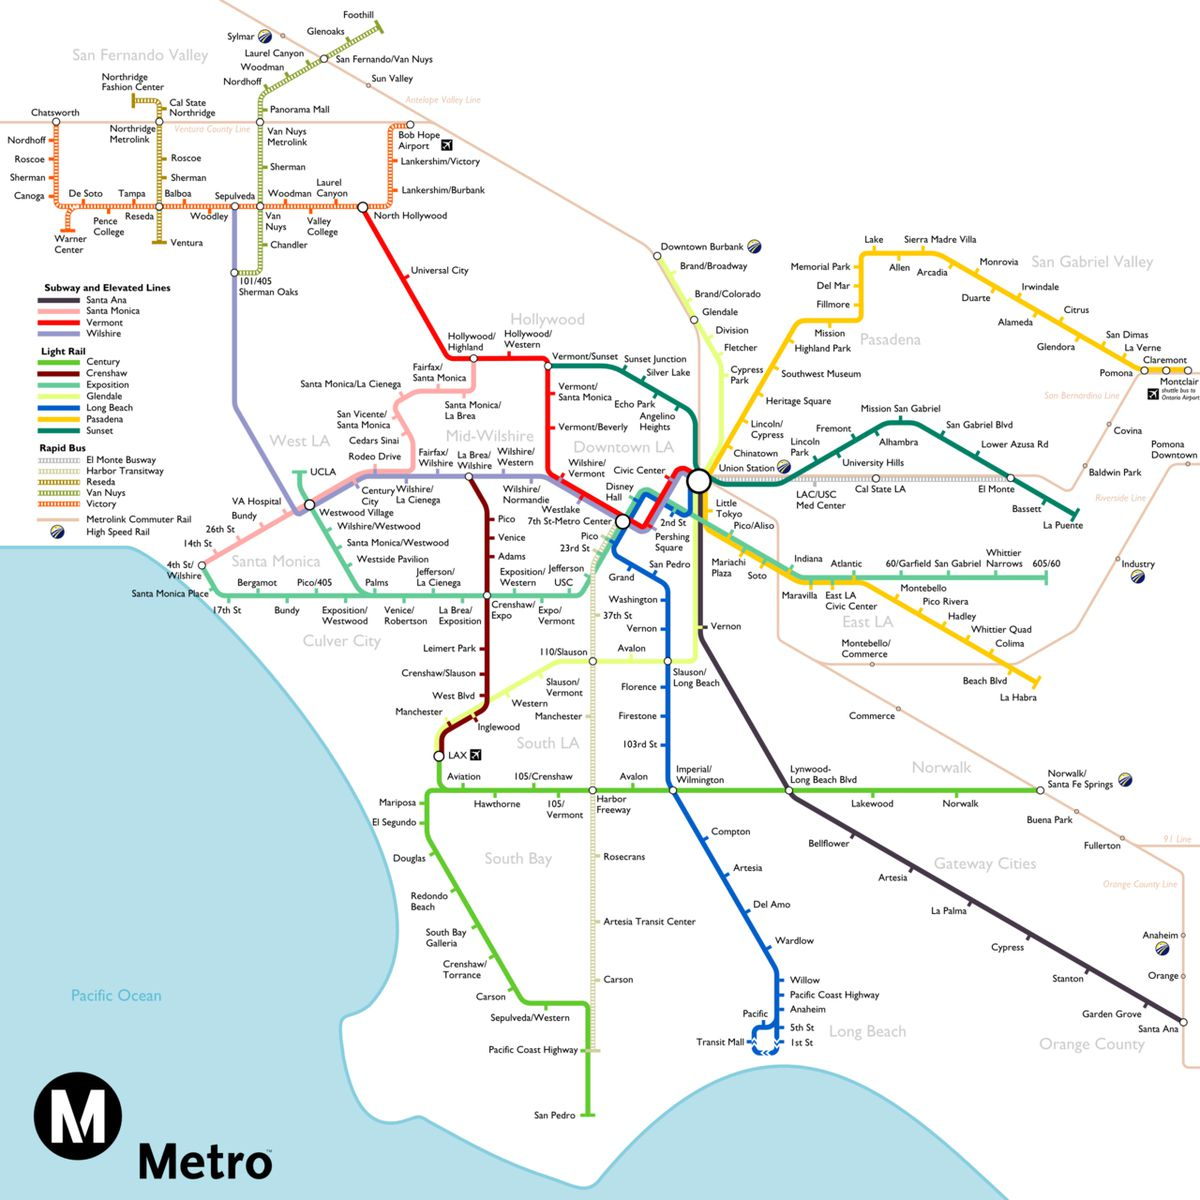 Los Angeles Subway Map 2016.The Most Optimistic Possible La Metro Rail Map Of 2040 Curbed La